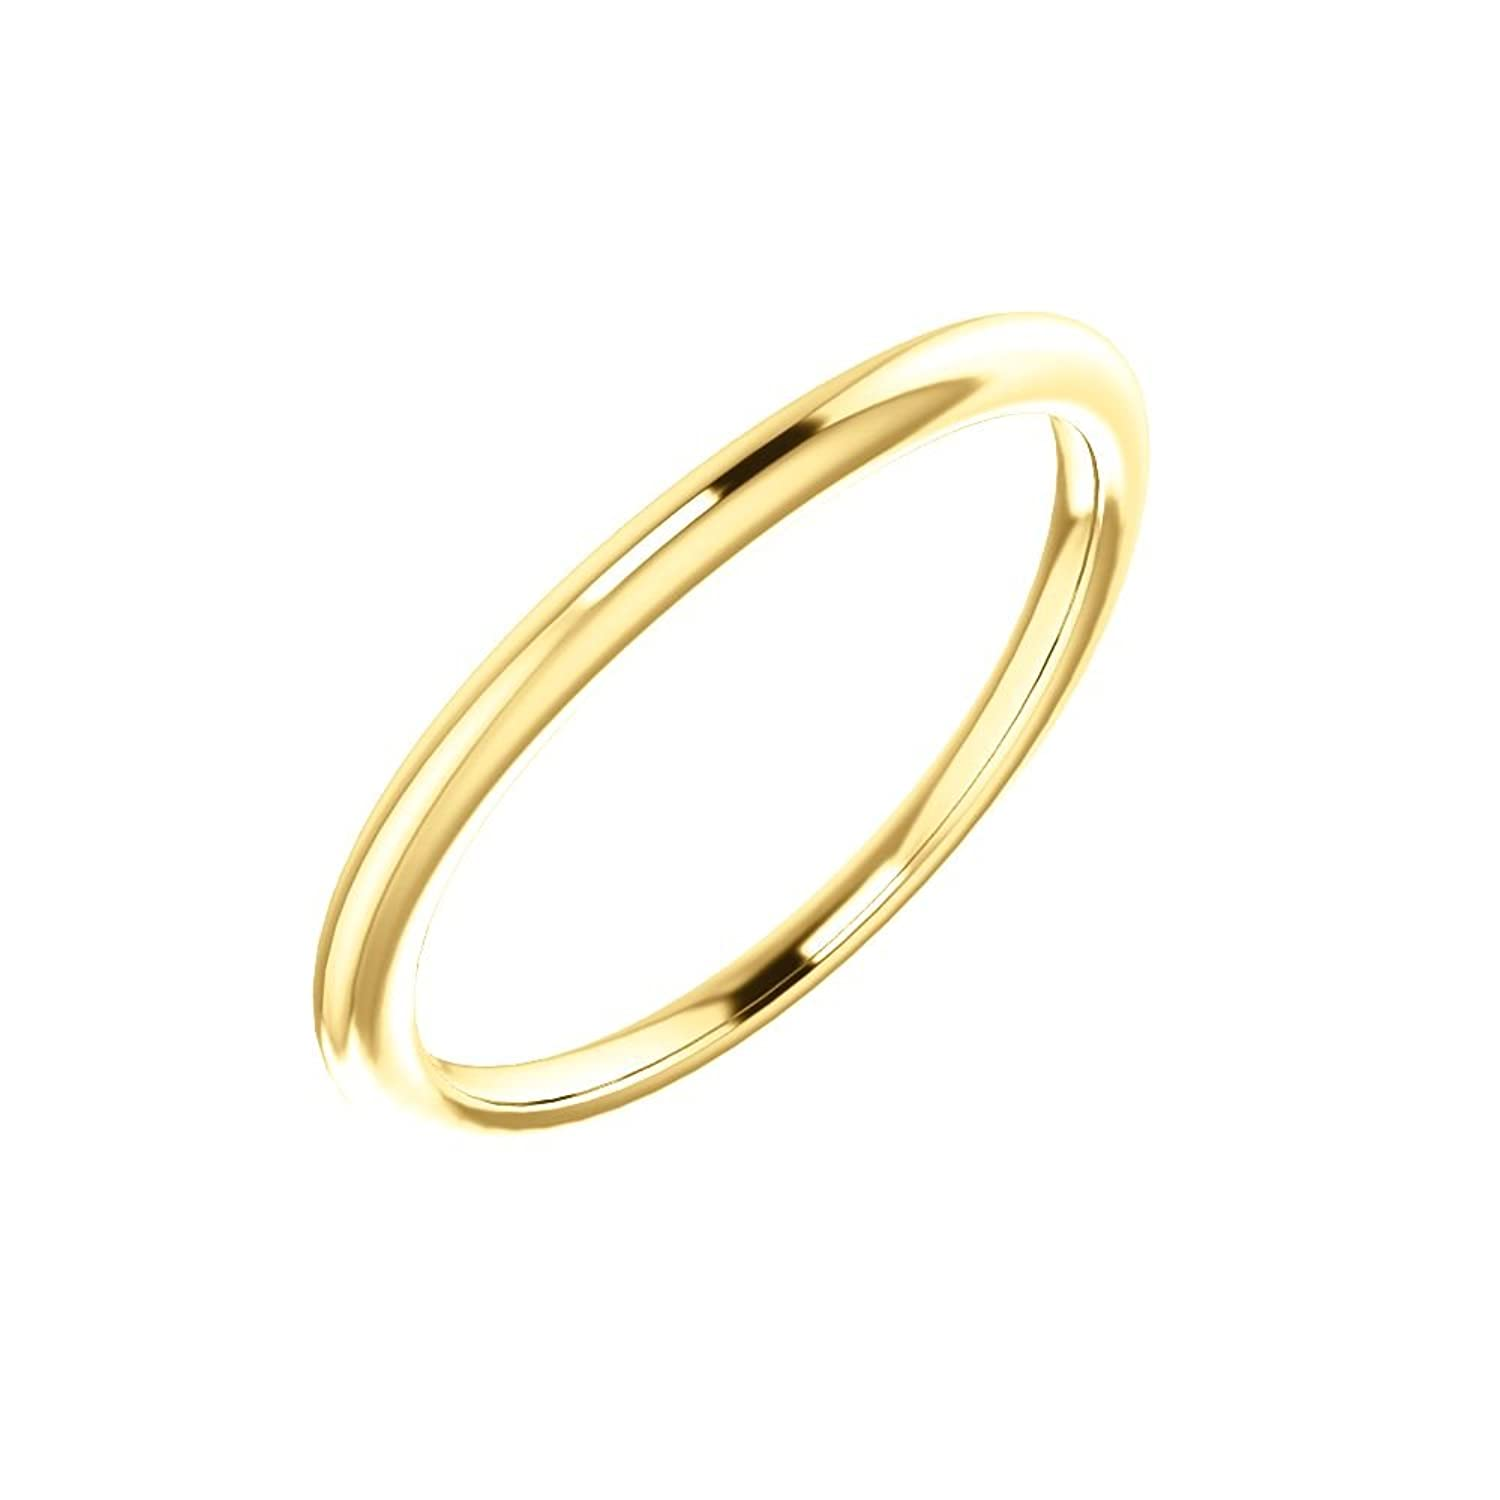 STU001- 18K Yellow Band for 4.5mm Square Ring